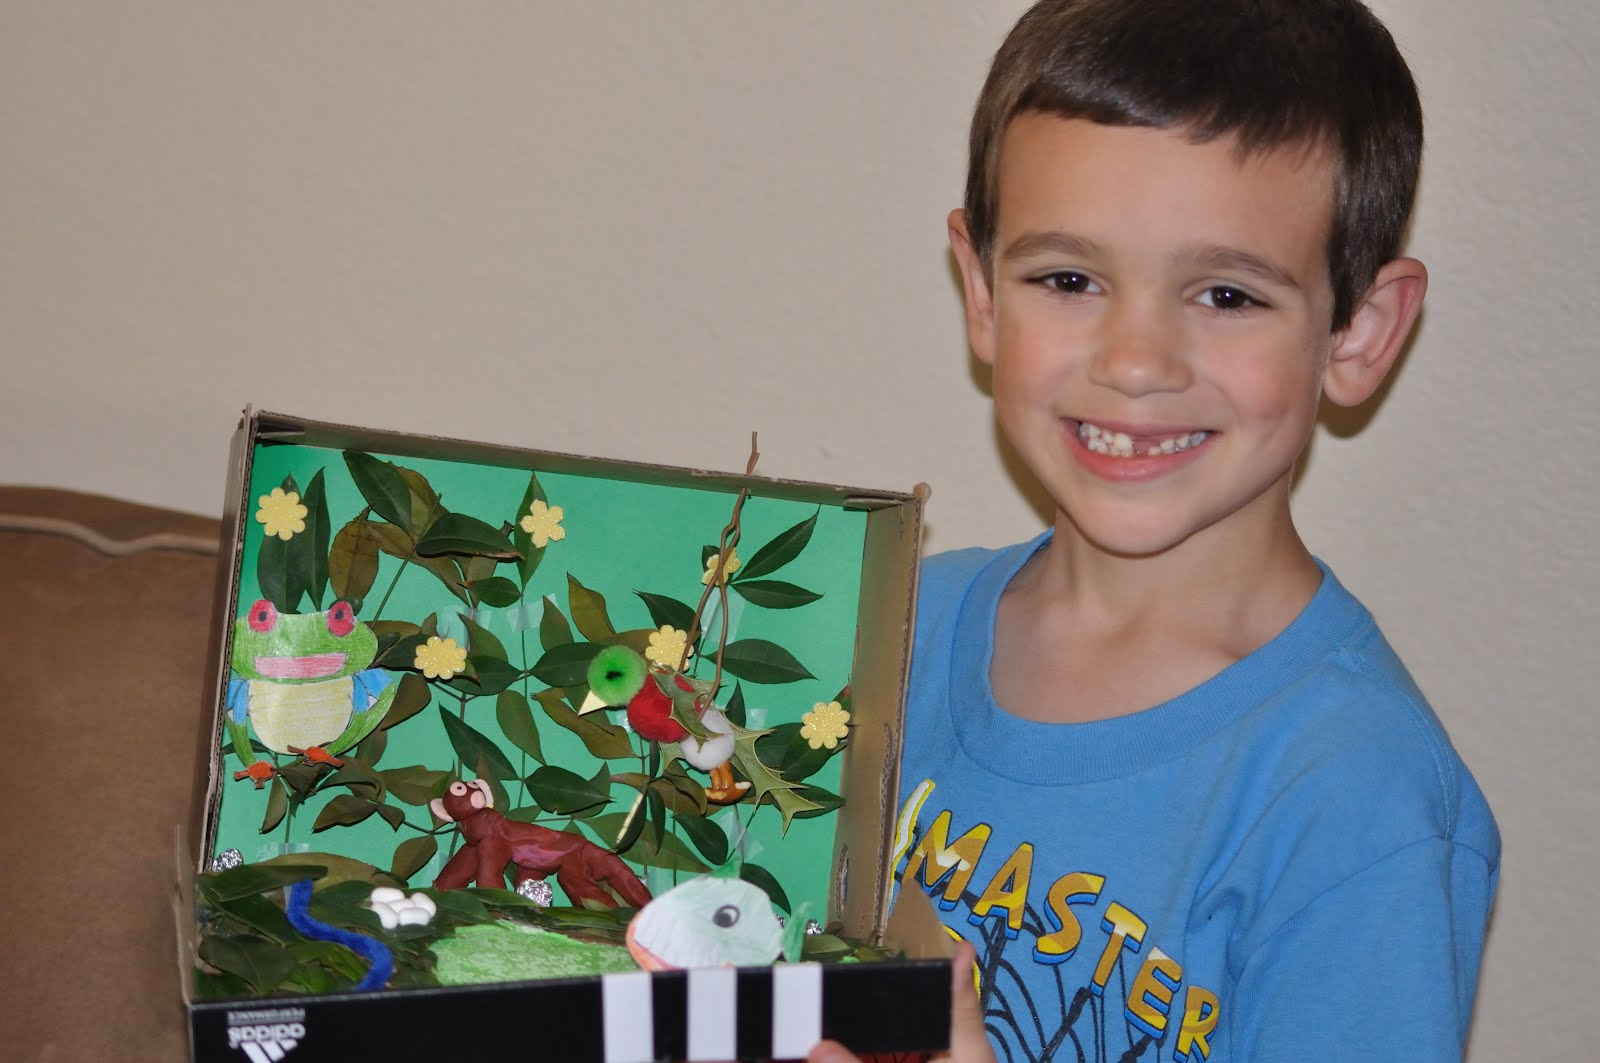 Snake Projects With Shoe Box http://pistoriusfamily.blogspot.com/2012/03/rain-forest-diorama.html